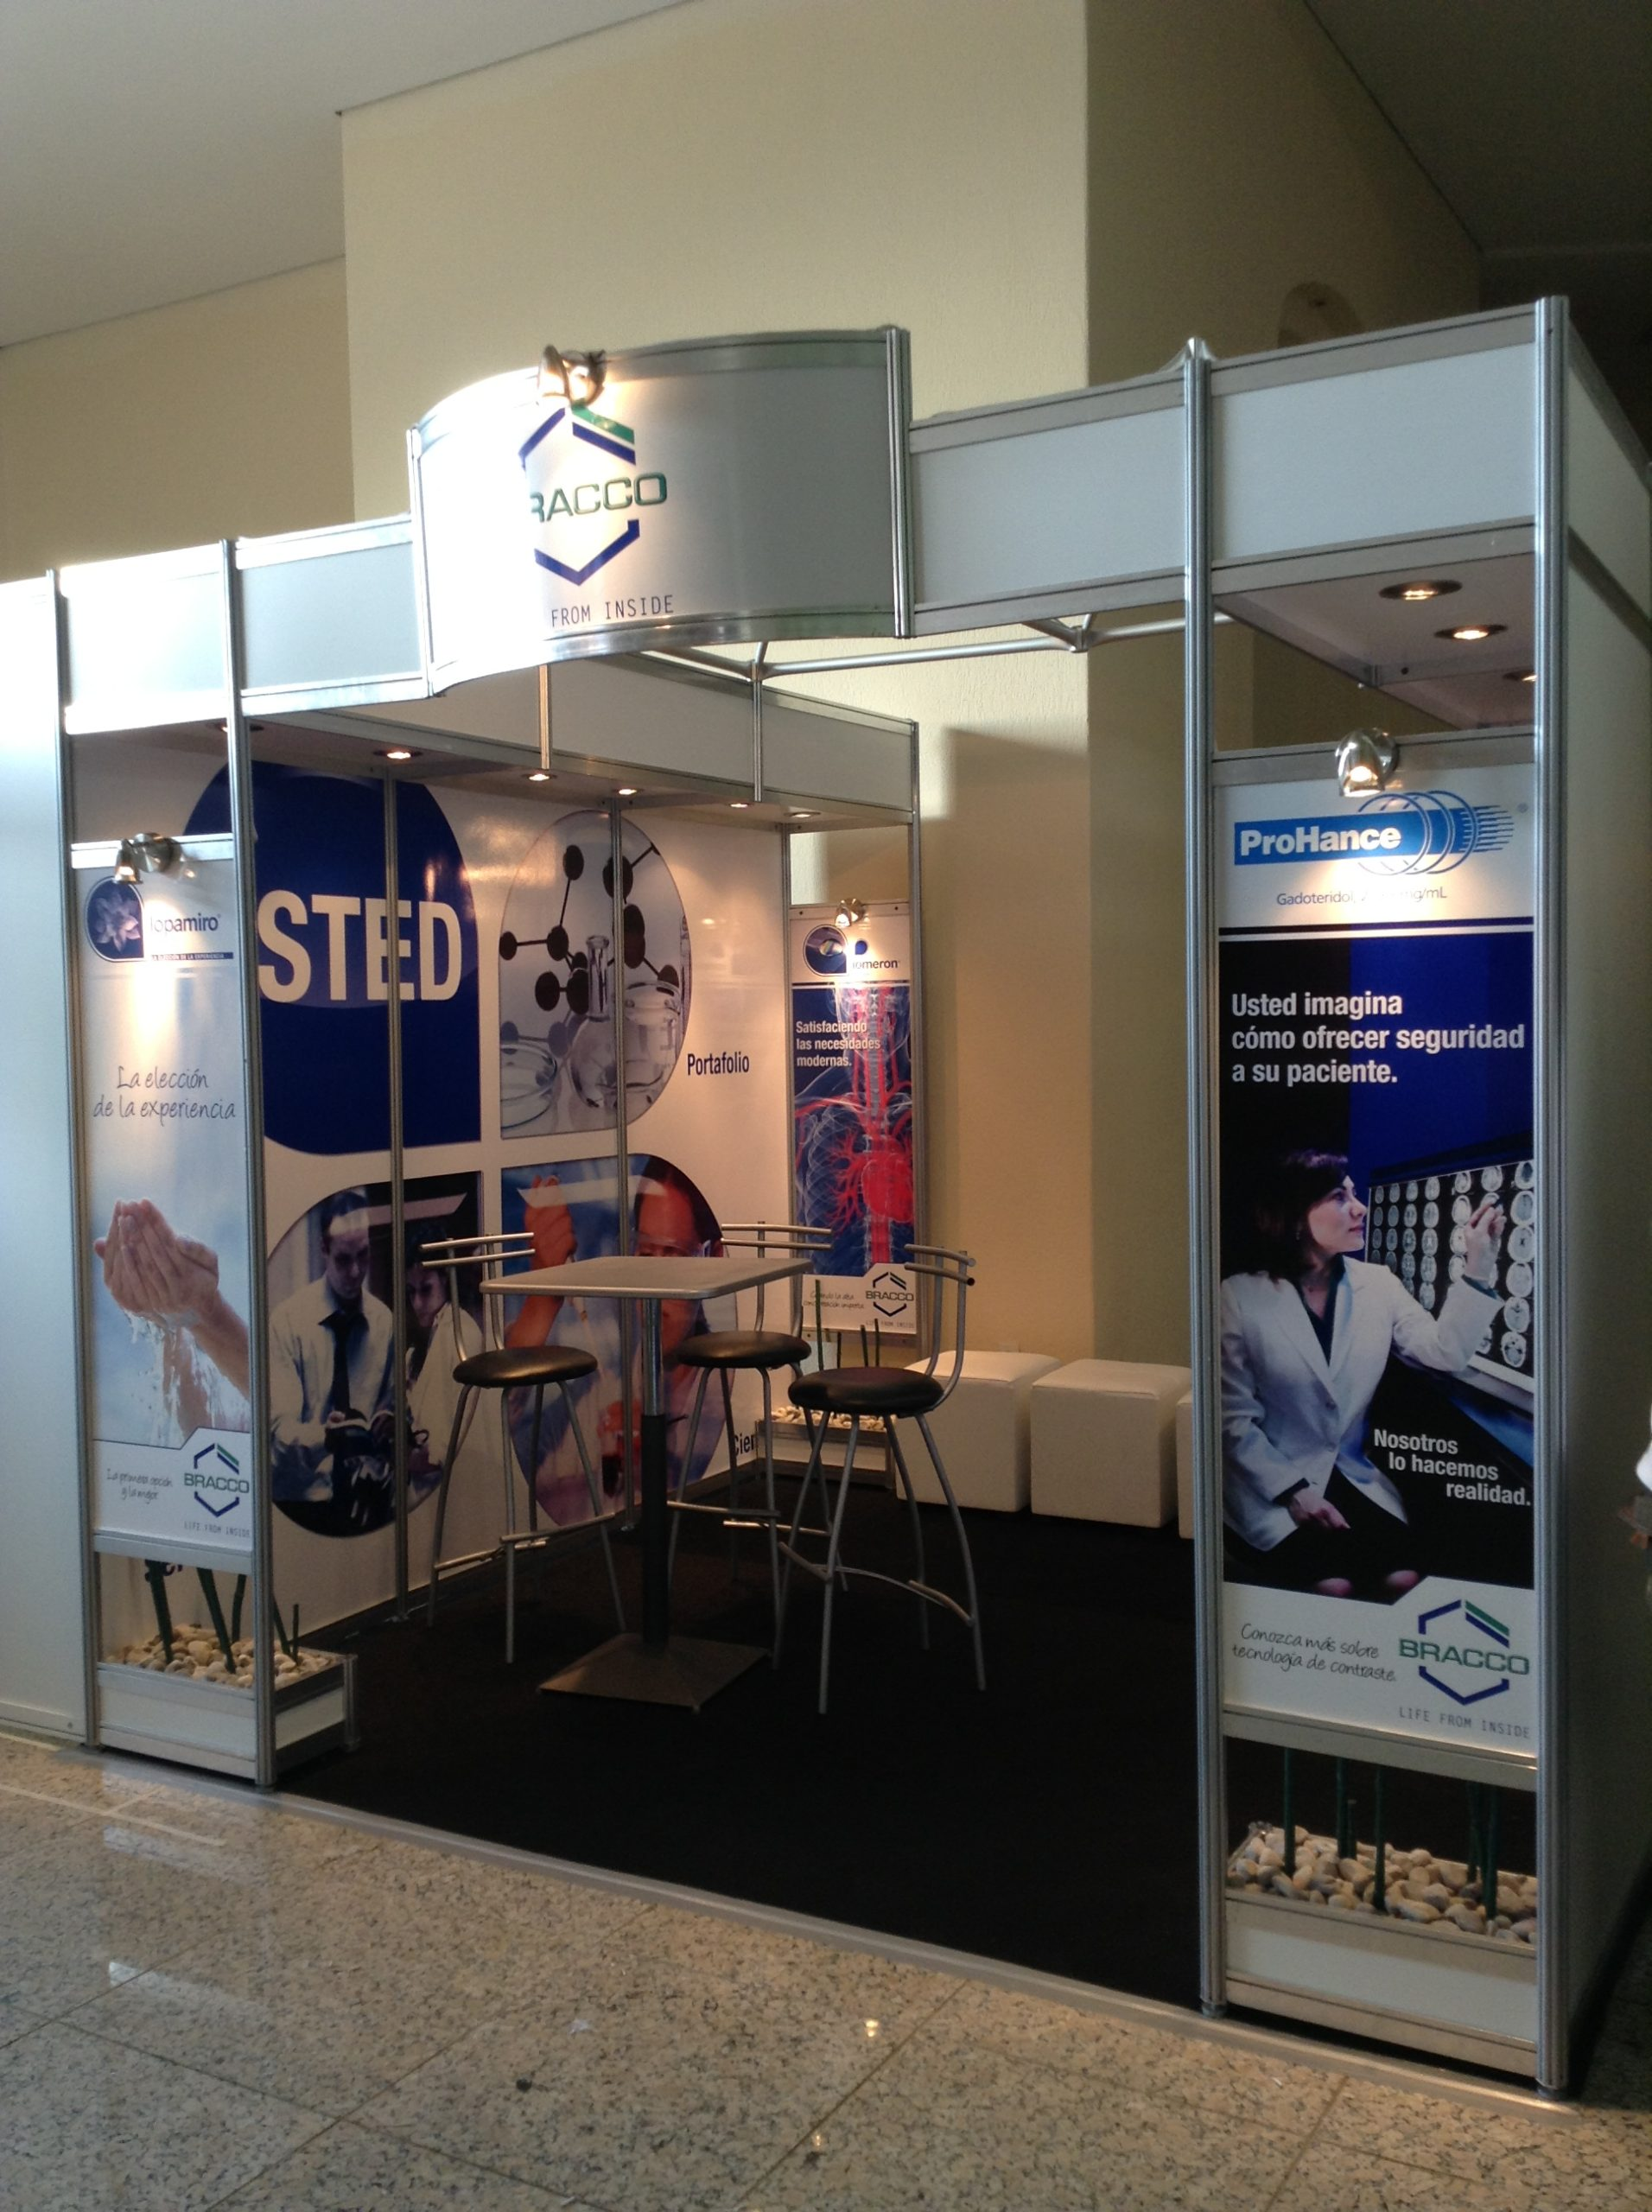 Stand 3 3 bracco dise o de stands en canc n stands en canc n elstand com - Stand de diseno ...